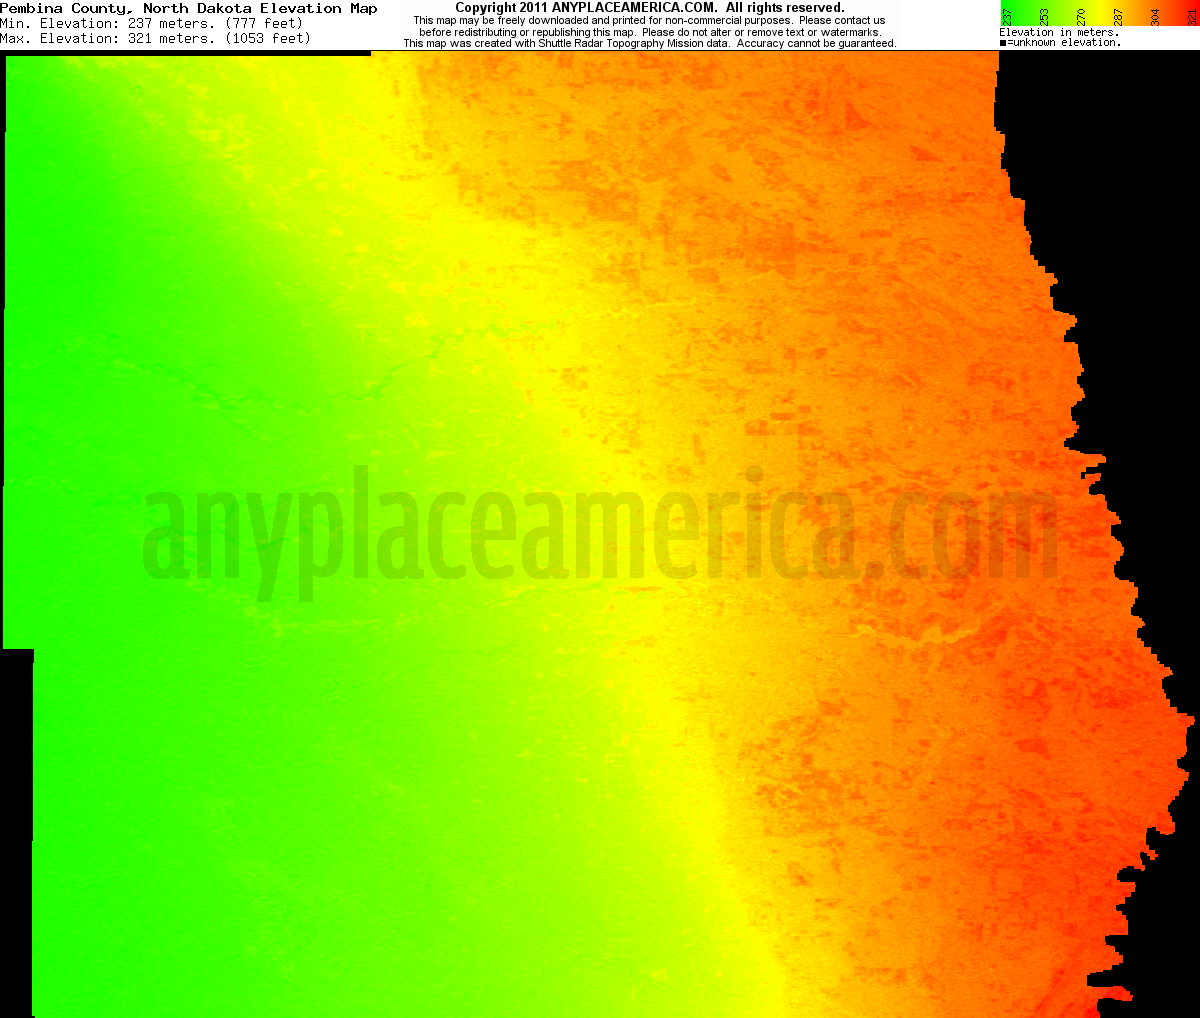 North dakota pembina county cavalier - Download Pembina County Elevation Map